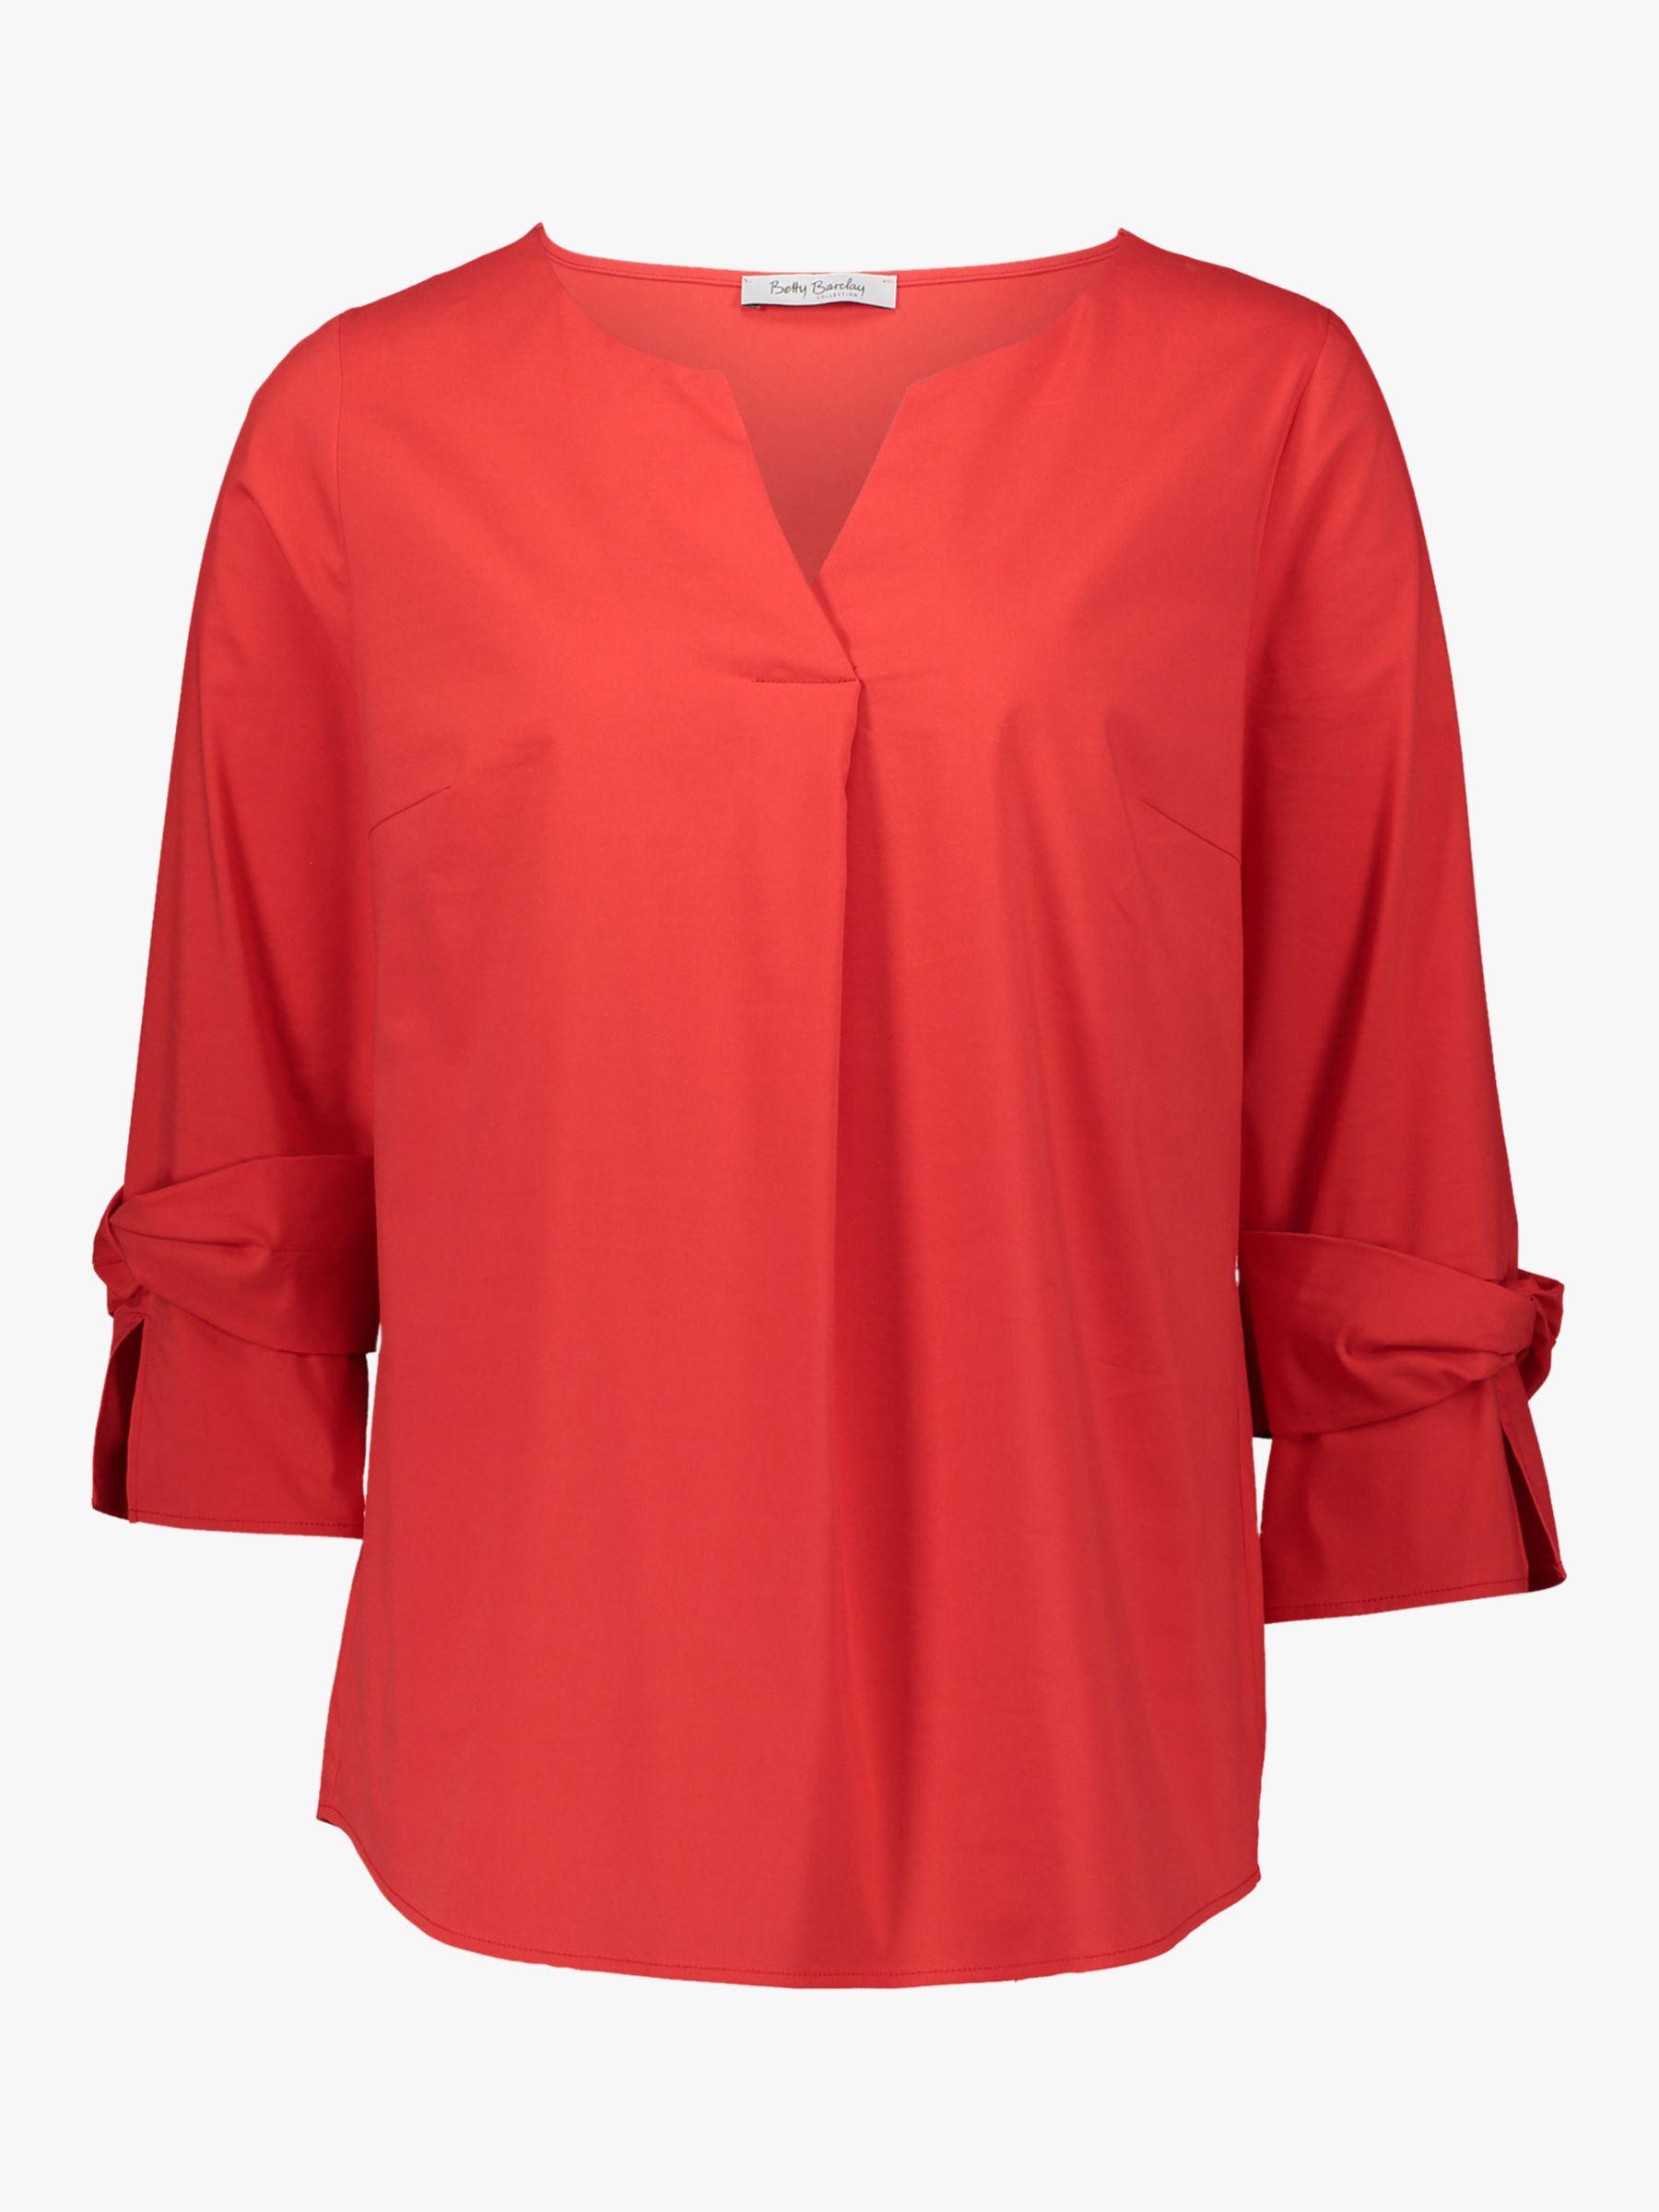 8f182224cfb55 Betty Barclay - Red Knot Statement Sleeve V-neck Blouse - Lyst. View  fullscreen